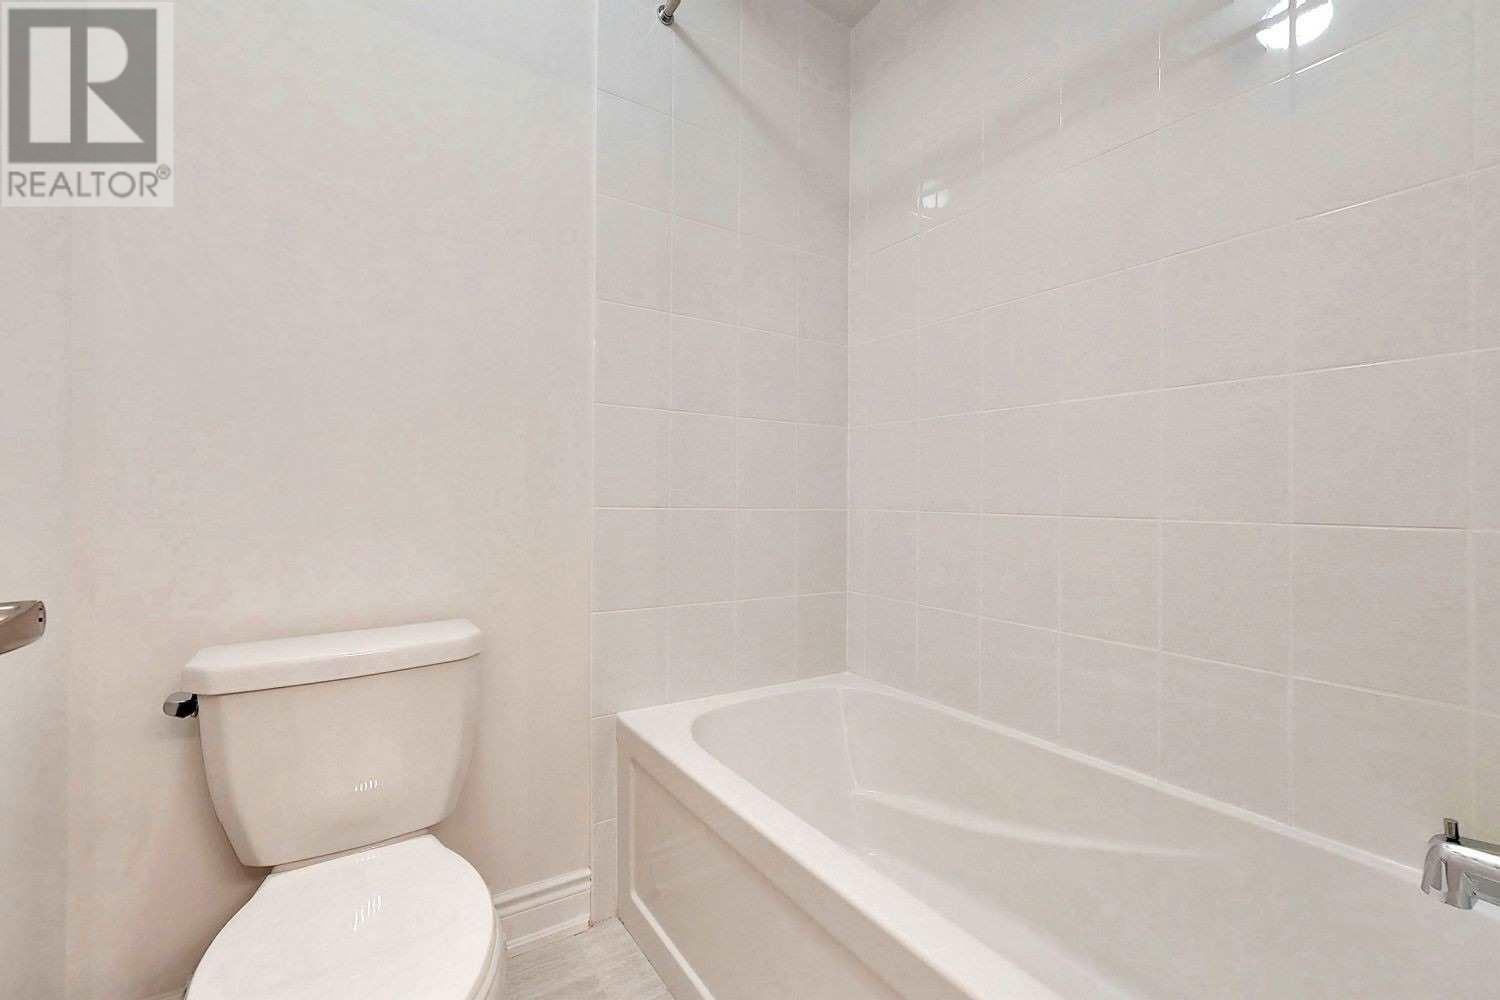 3152 Post Rd, Oakville, Ontario  L6H 0V4 - Photo 15 - W4642899